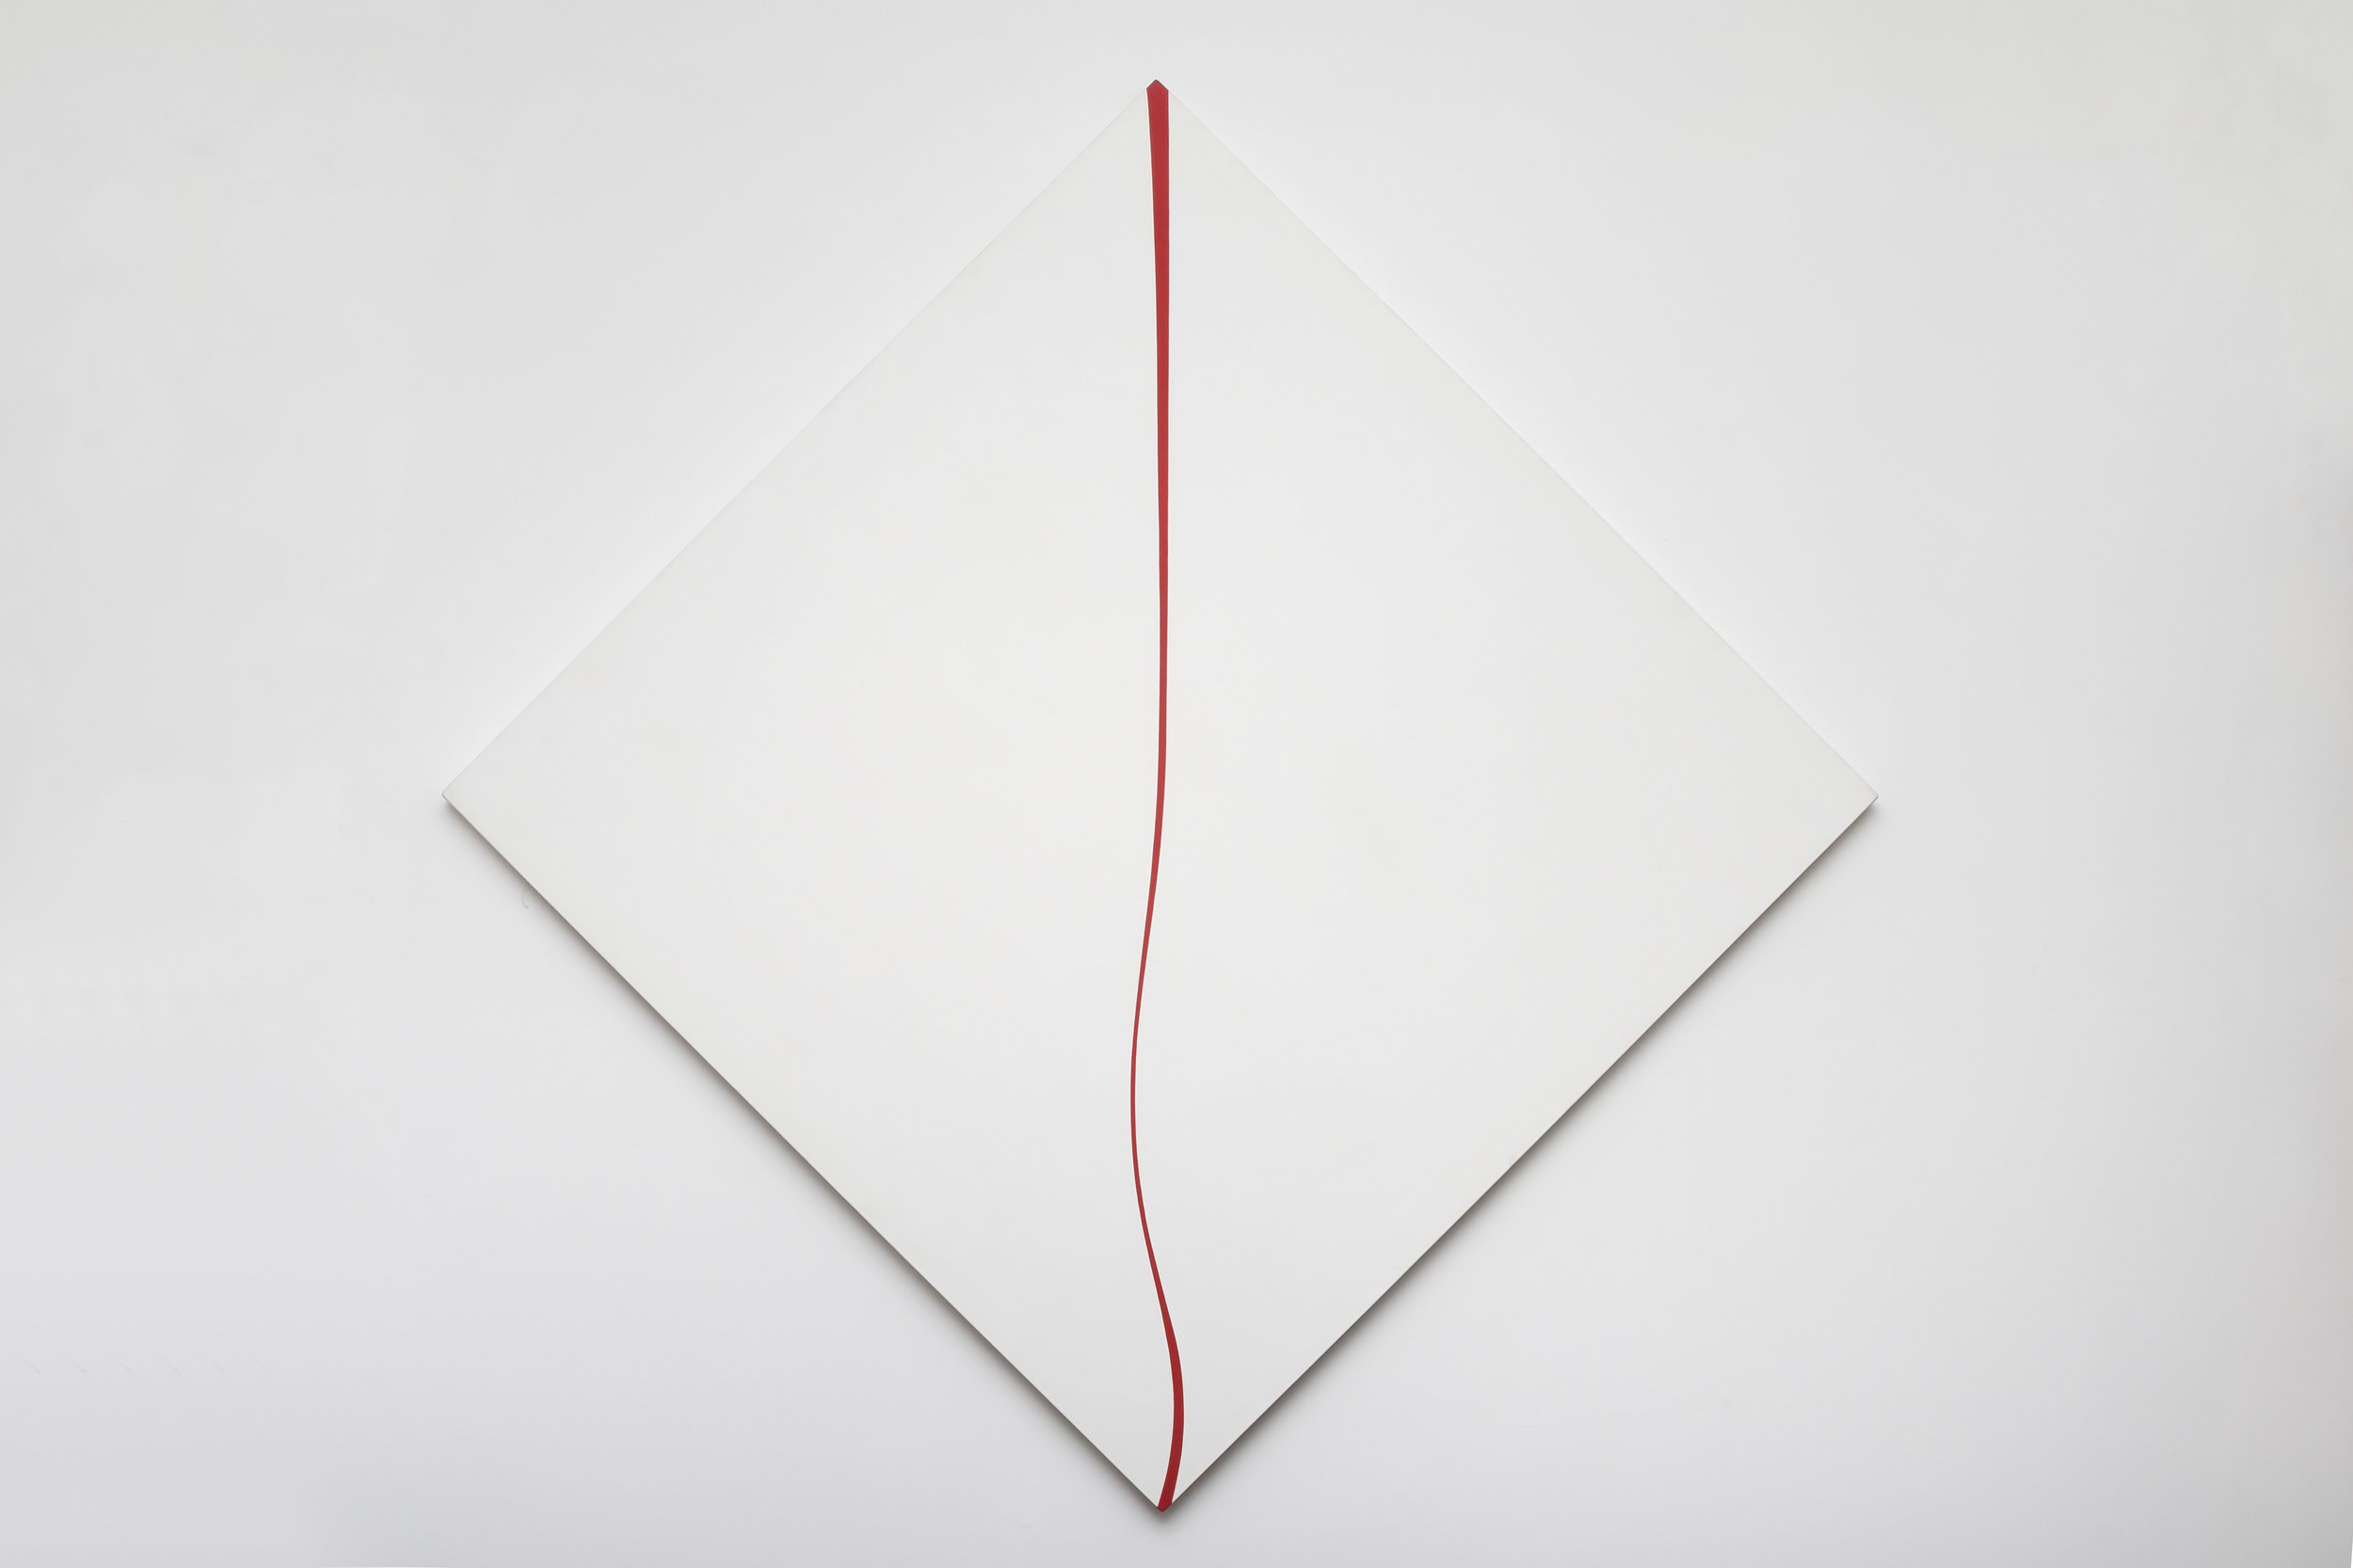 Untitled (April 18) , 1971  acrylic on canvas 85 x 85 inches; 215.9 x 215.9 centimeters